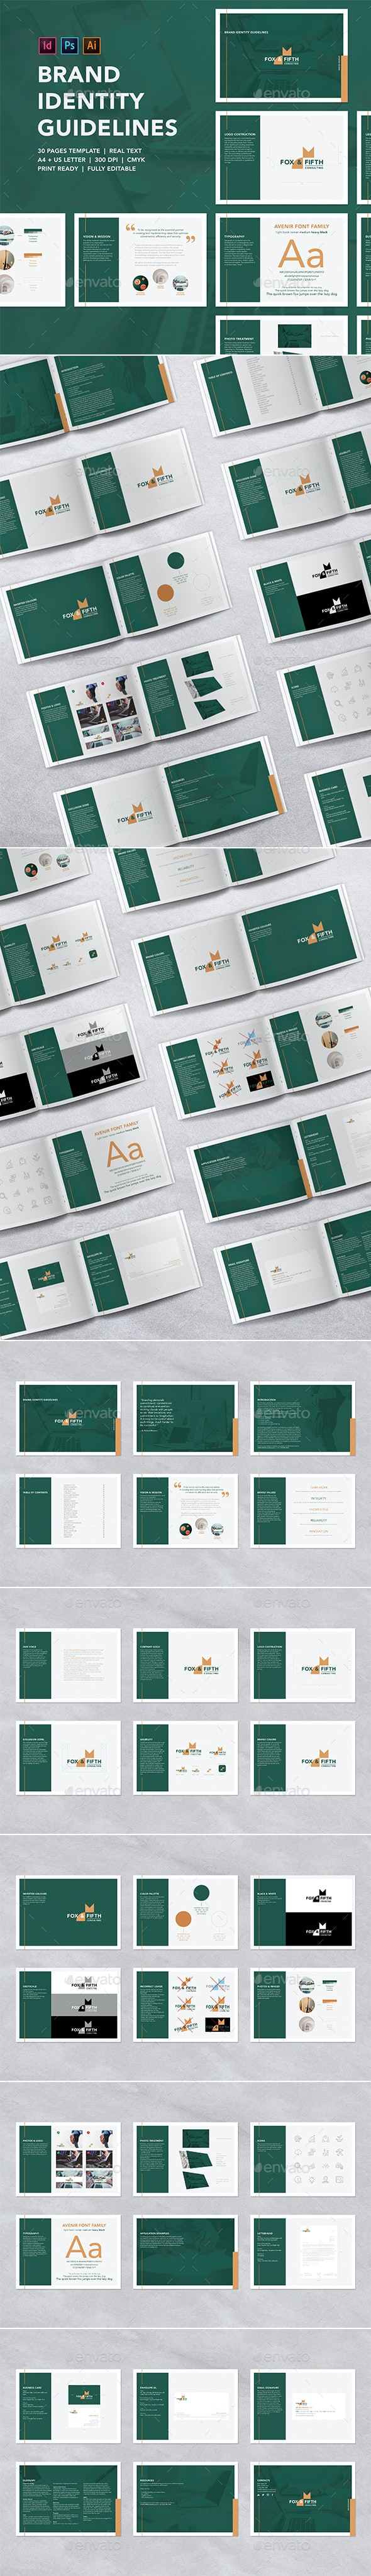 Brand Identity Guidelines Template - Corporate Brochures